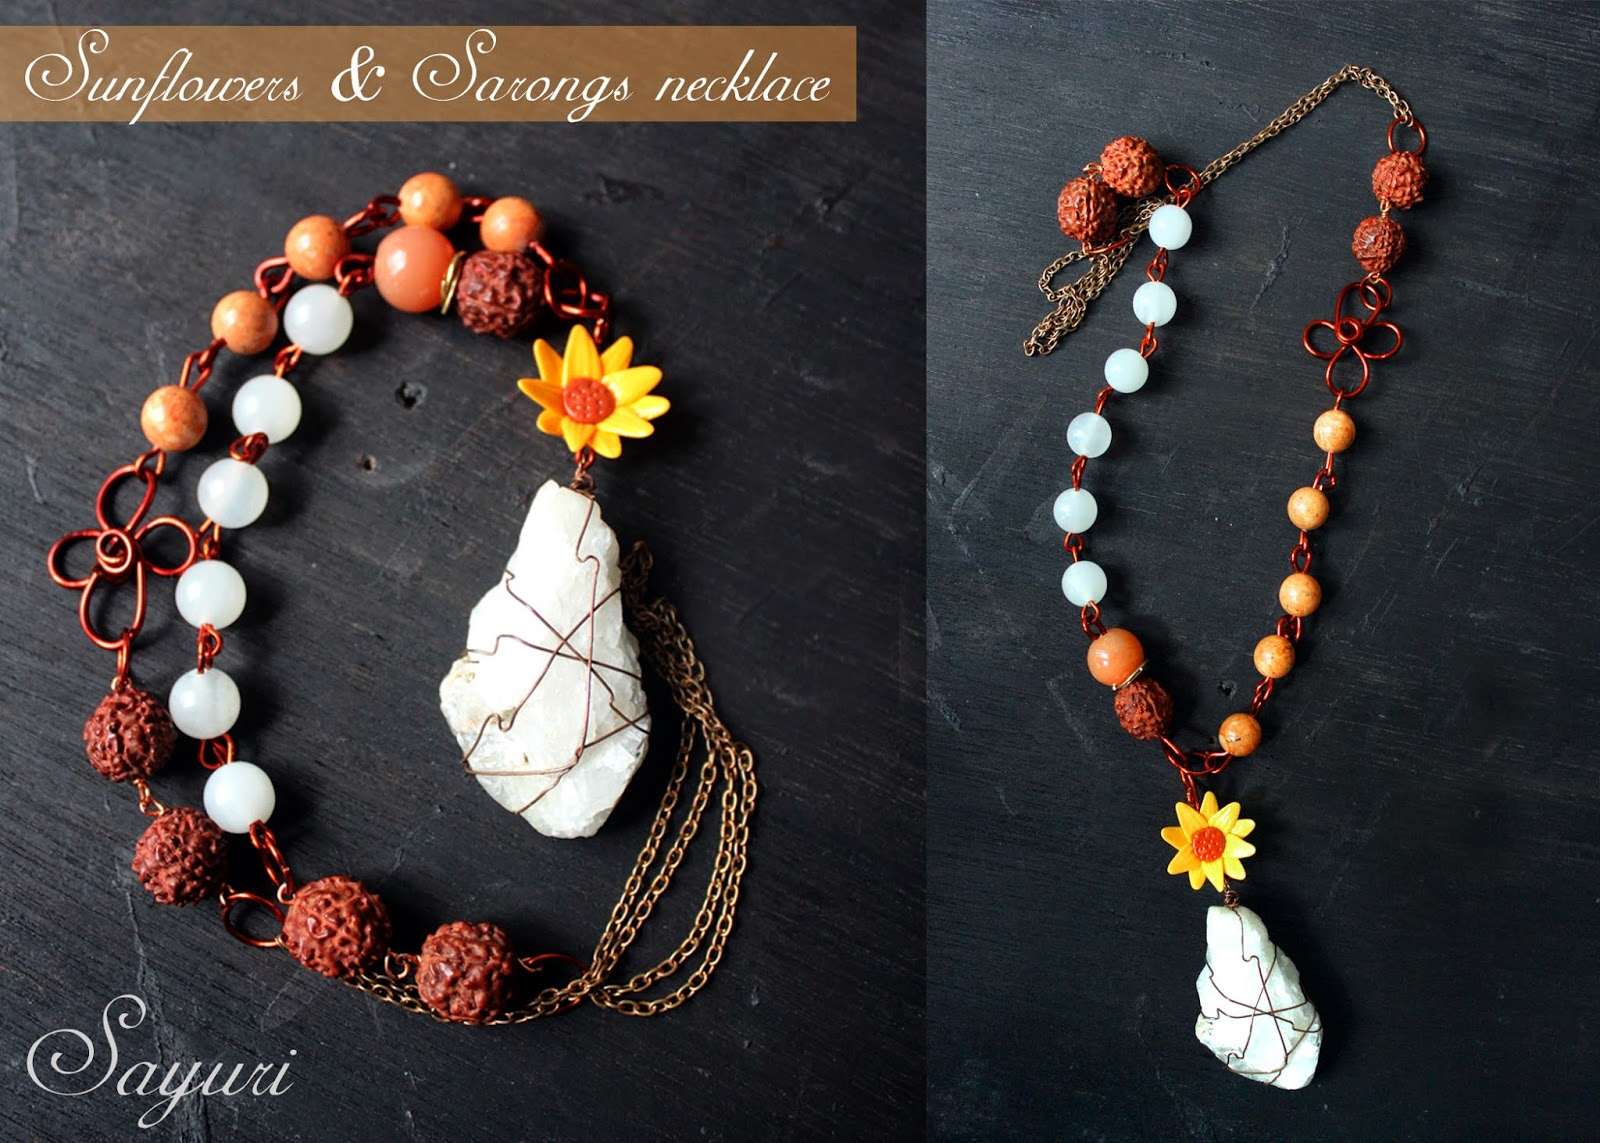 Sunflowers and sarongs necklace Divya N @ sayuri www.jewelsofsayuri.com